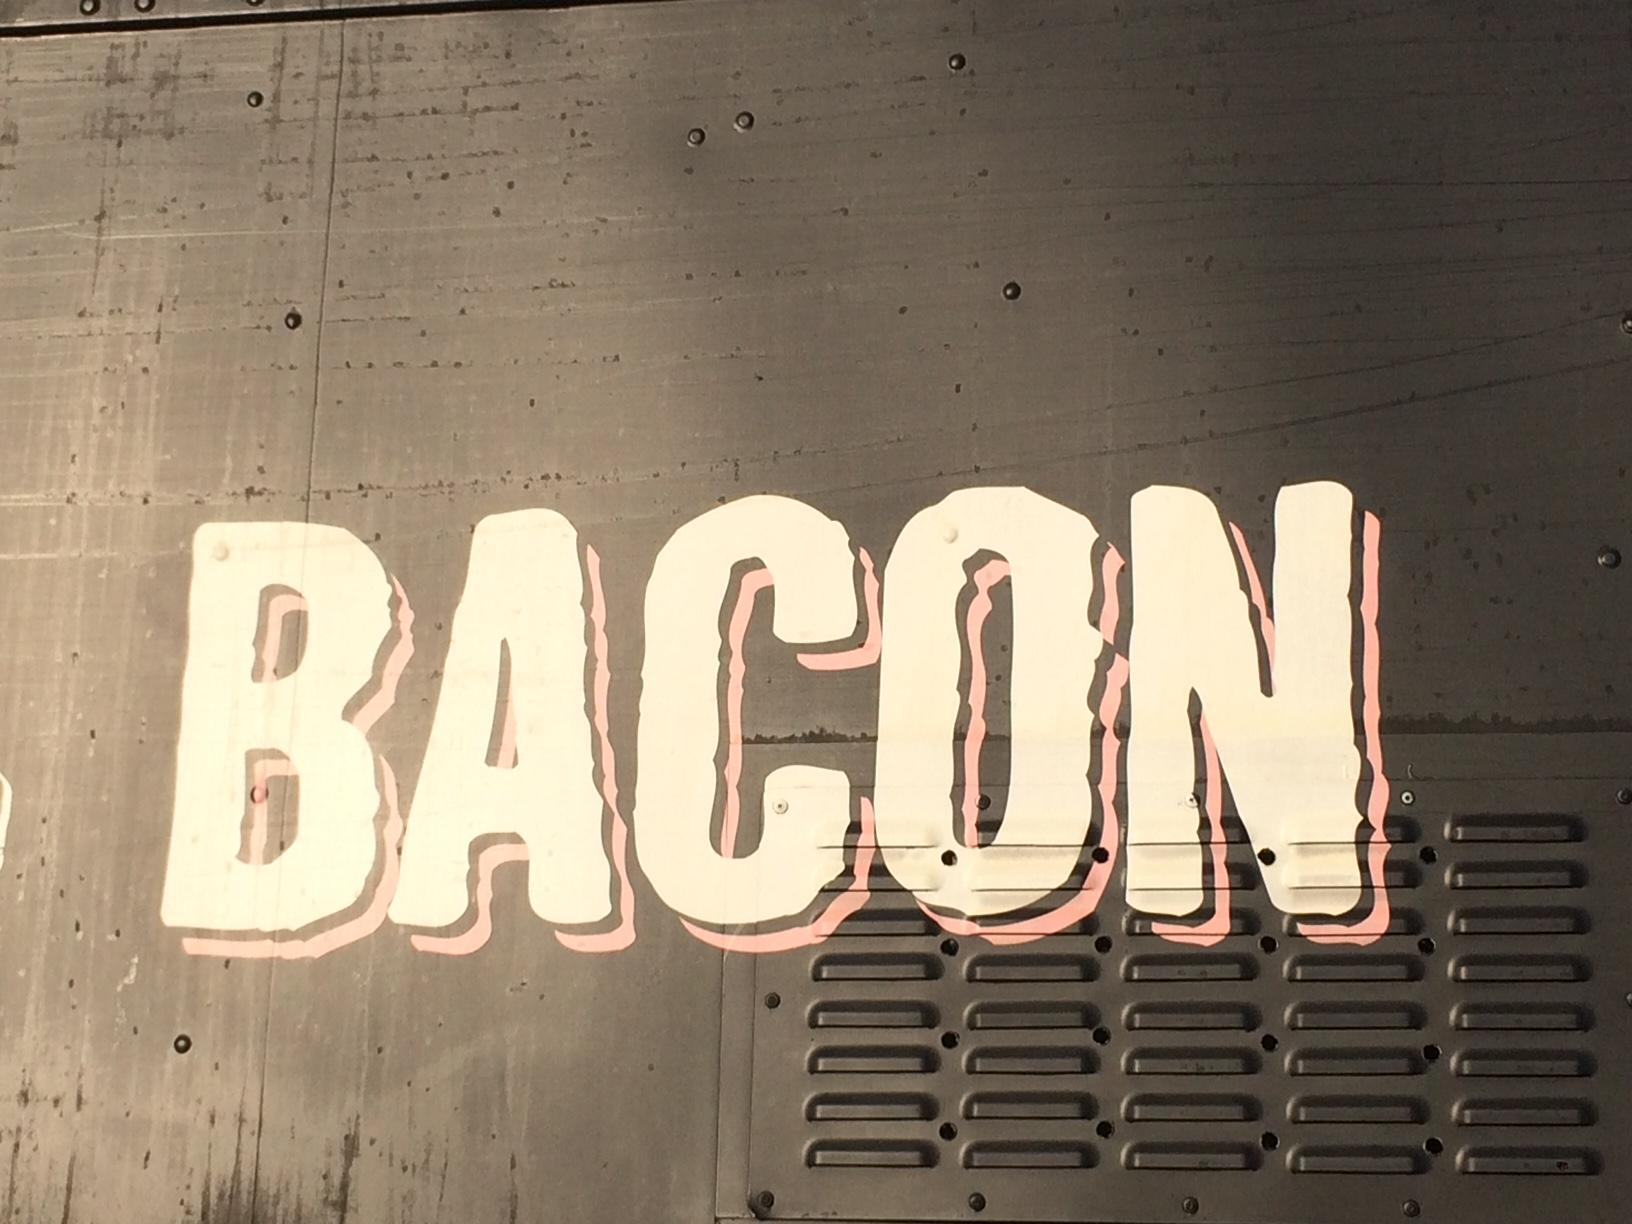 A meat lover's dream comes true at Bacon Bacon.